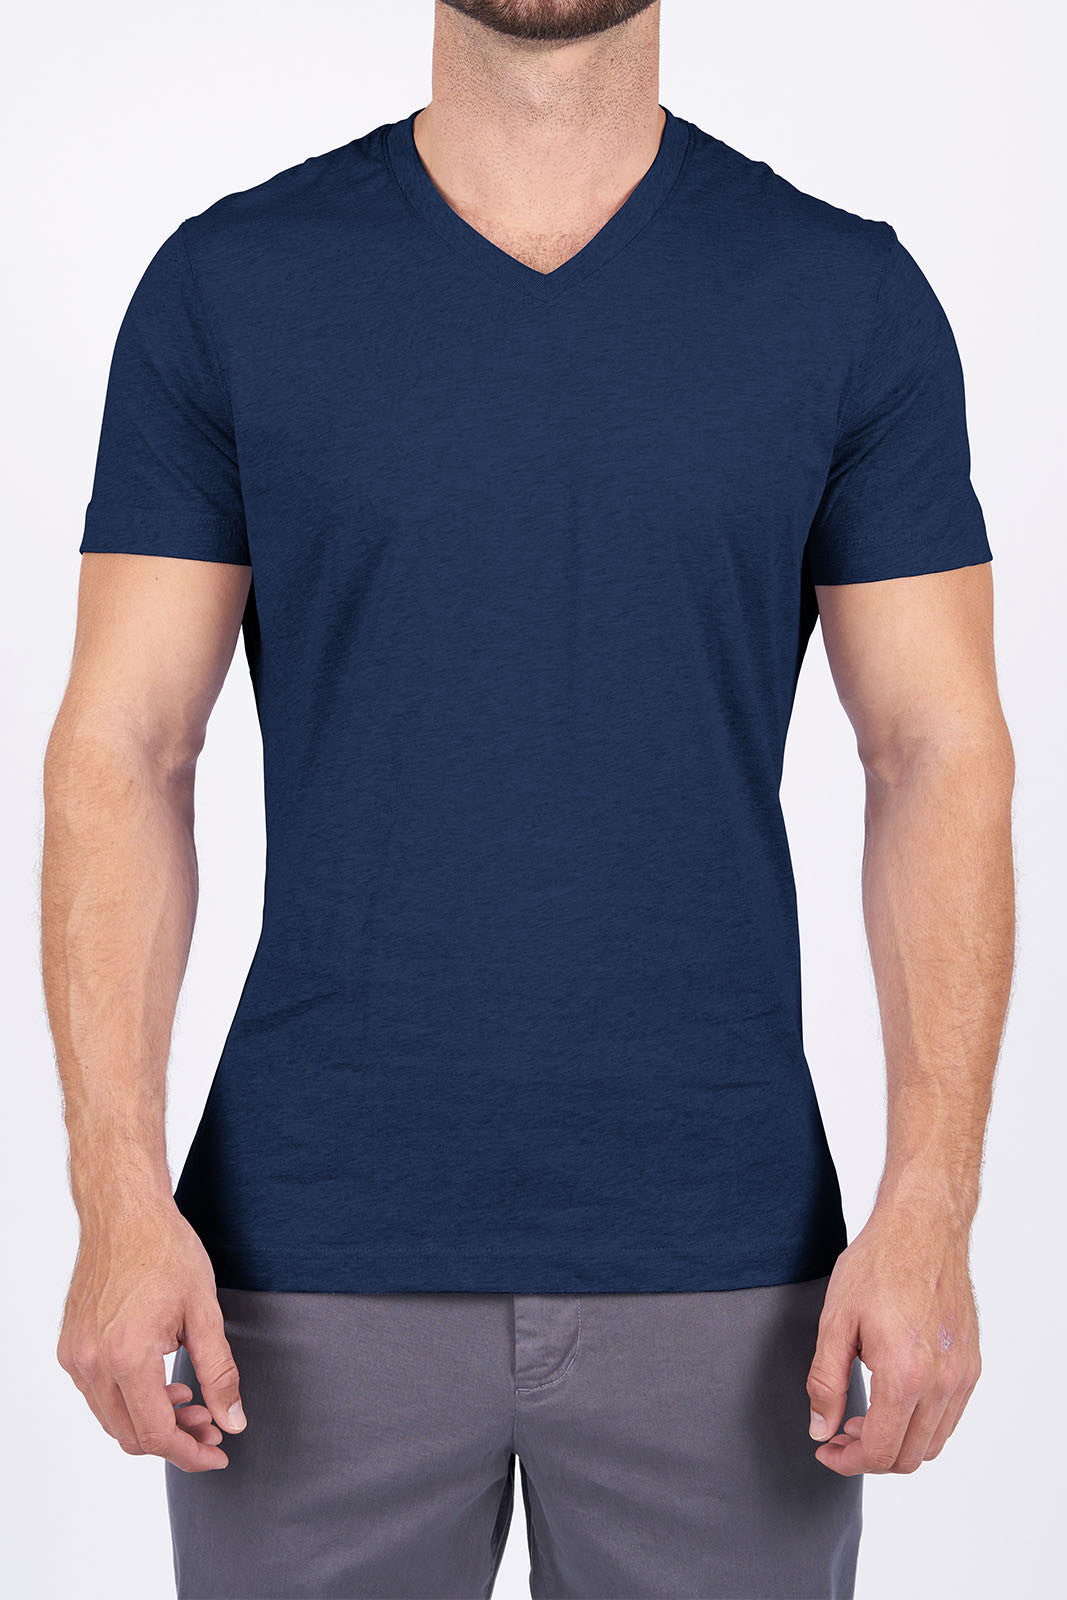 Navy Long-Staple Cotton T-Shirt: V-Neck